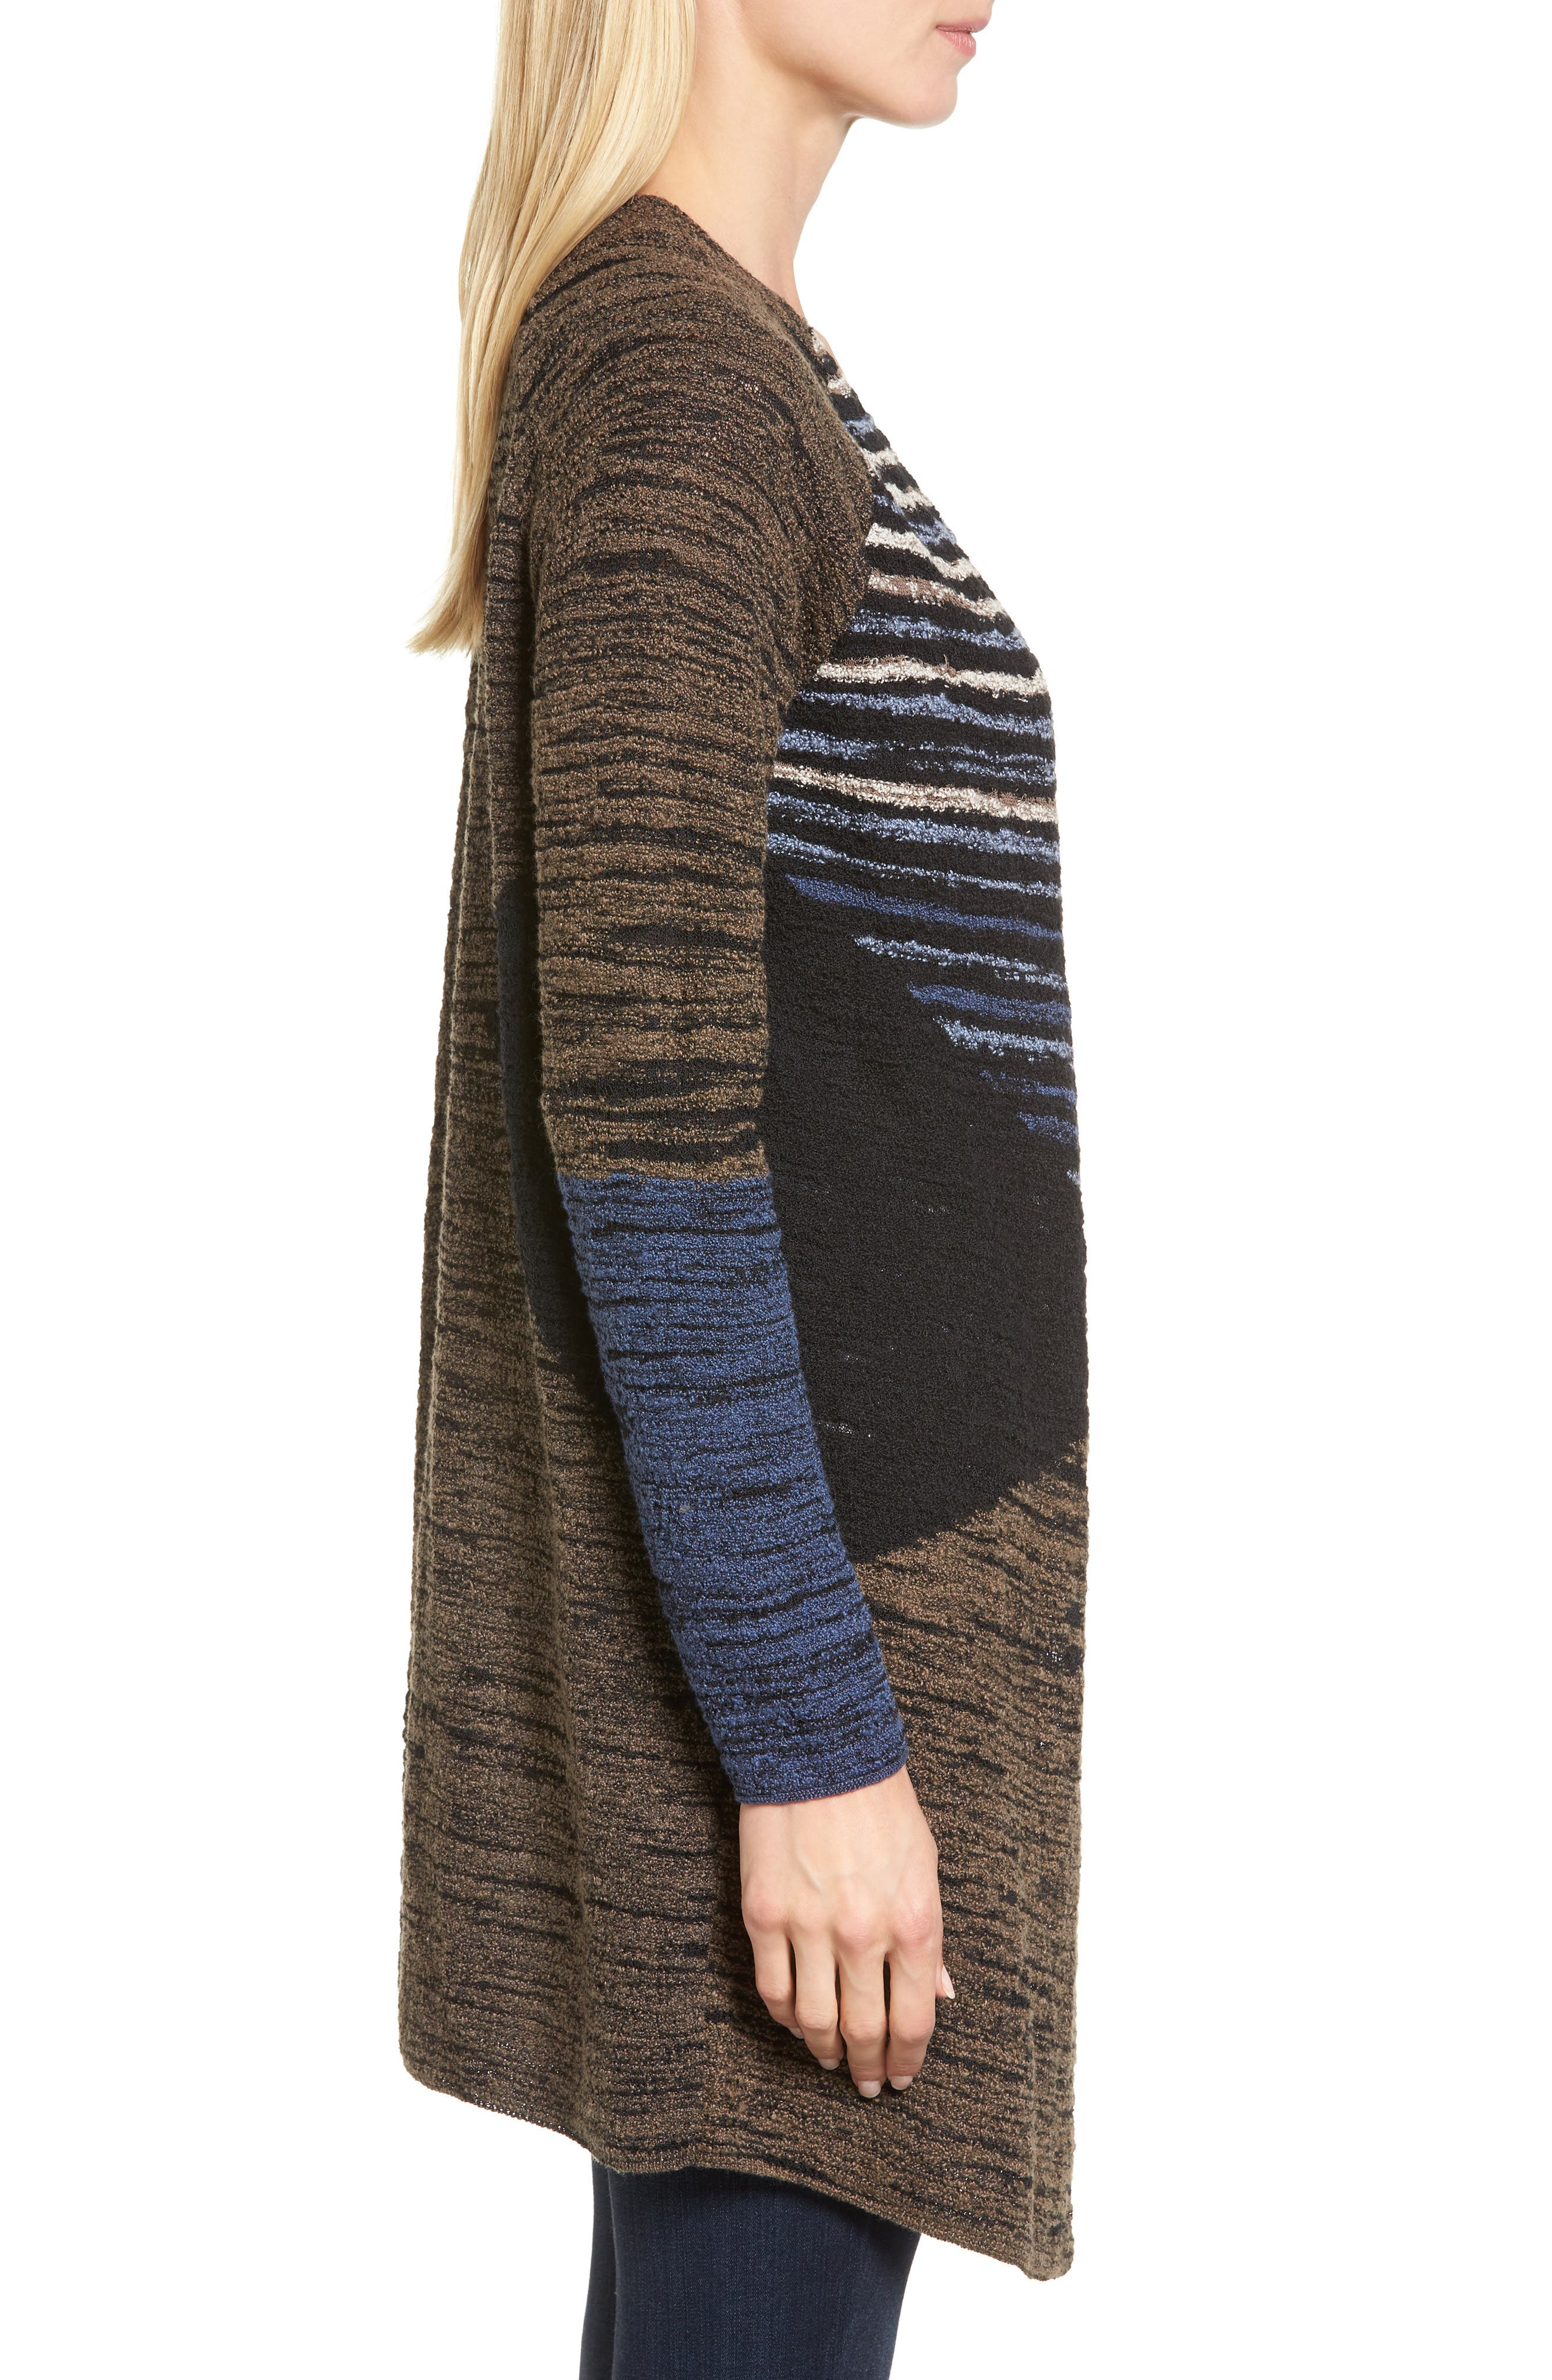 Layover Cardigan,                             Alternate thumbnail 3, color,                             499